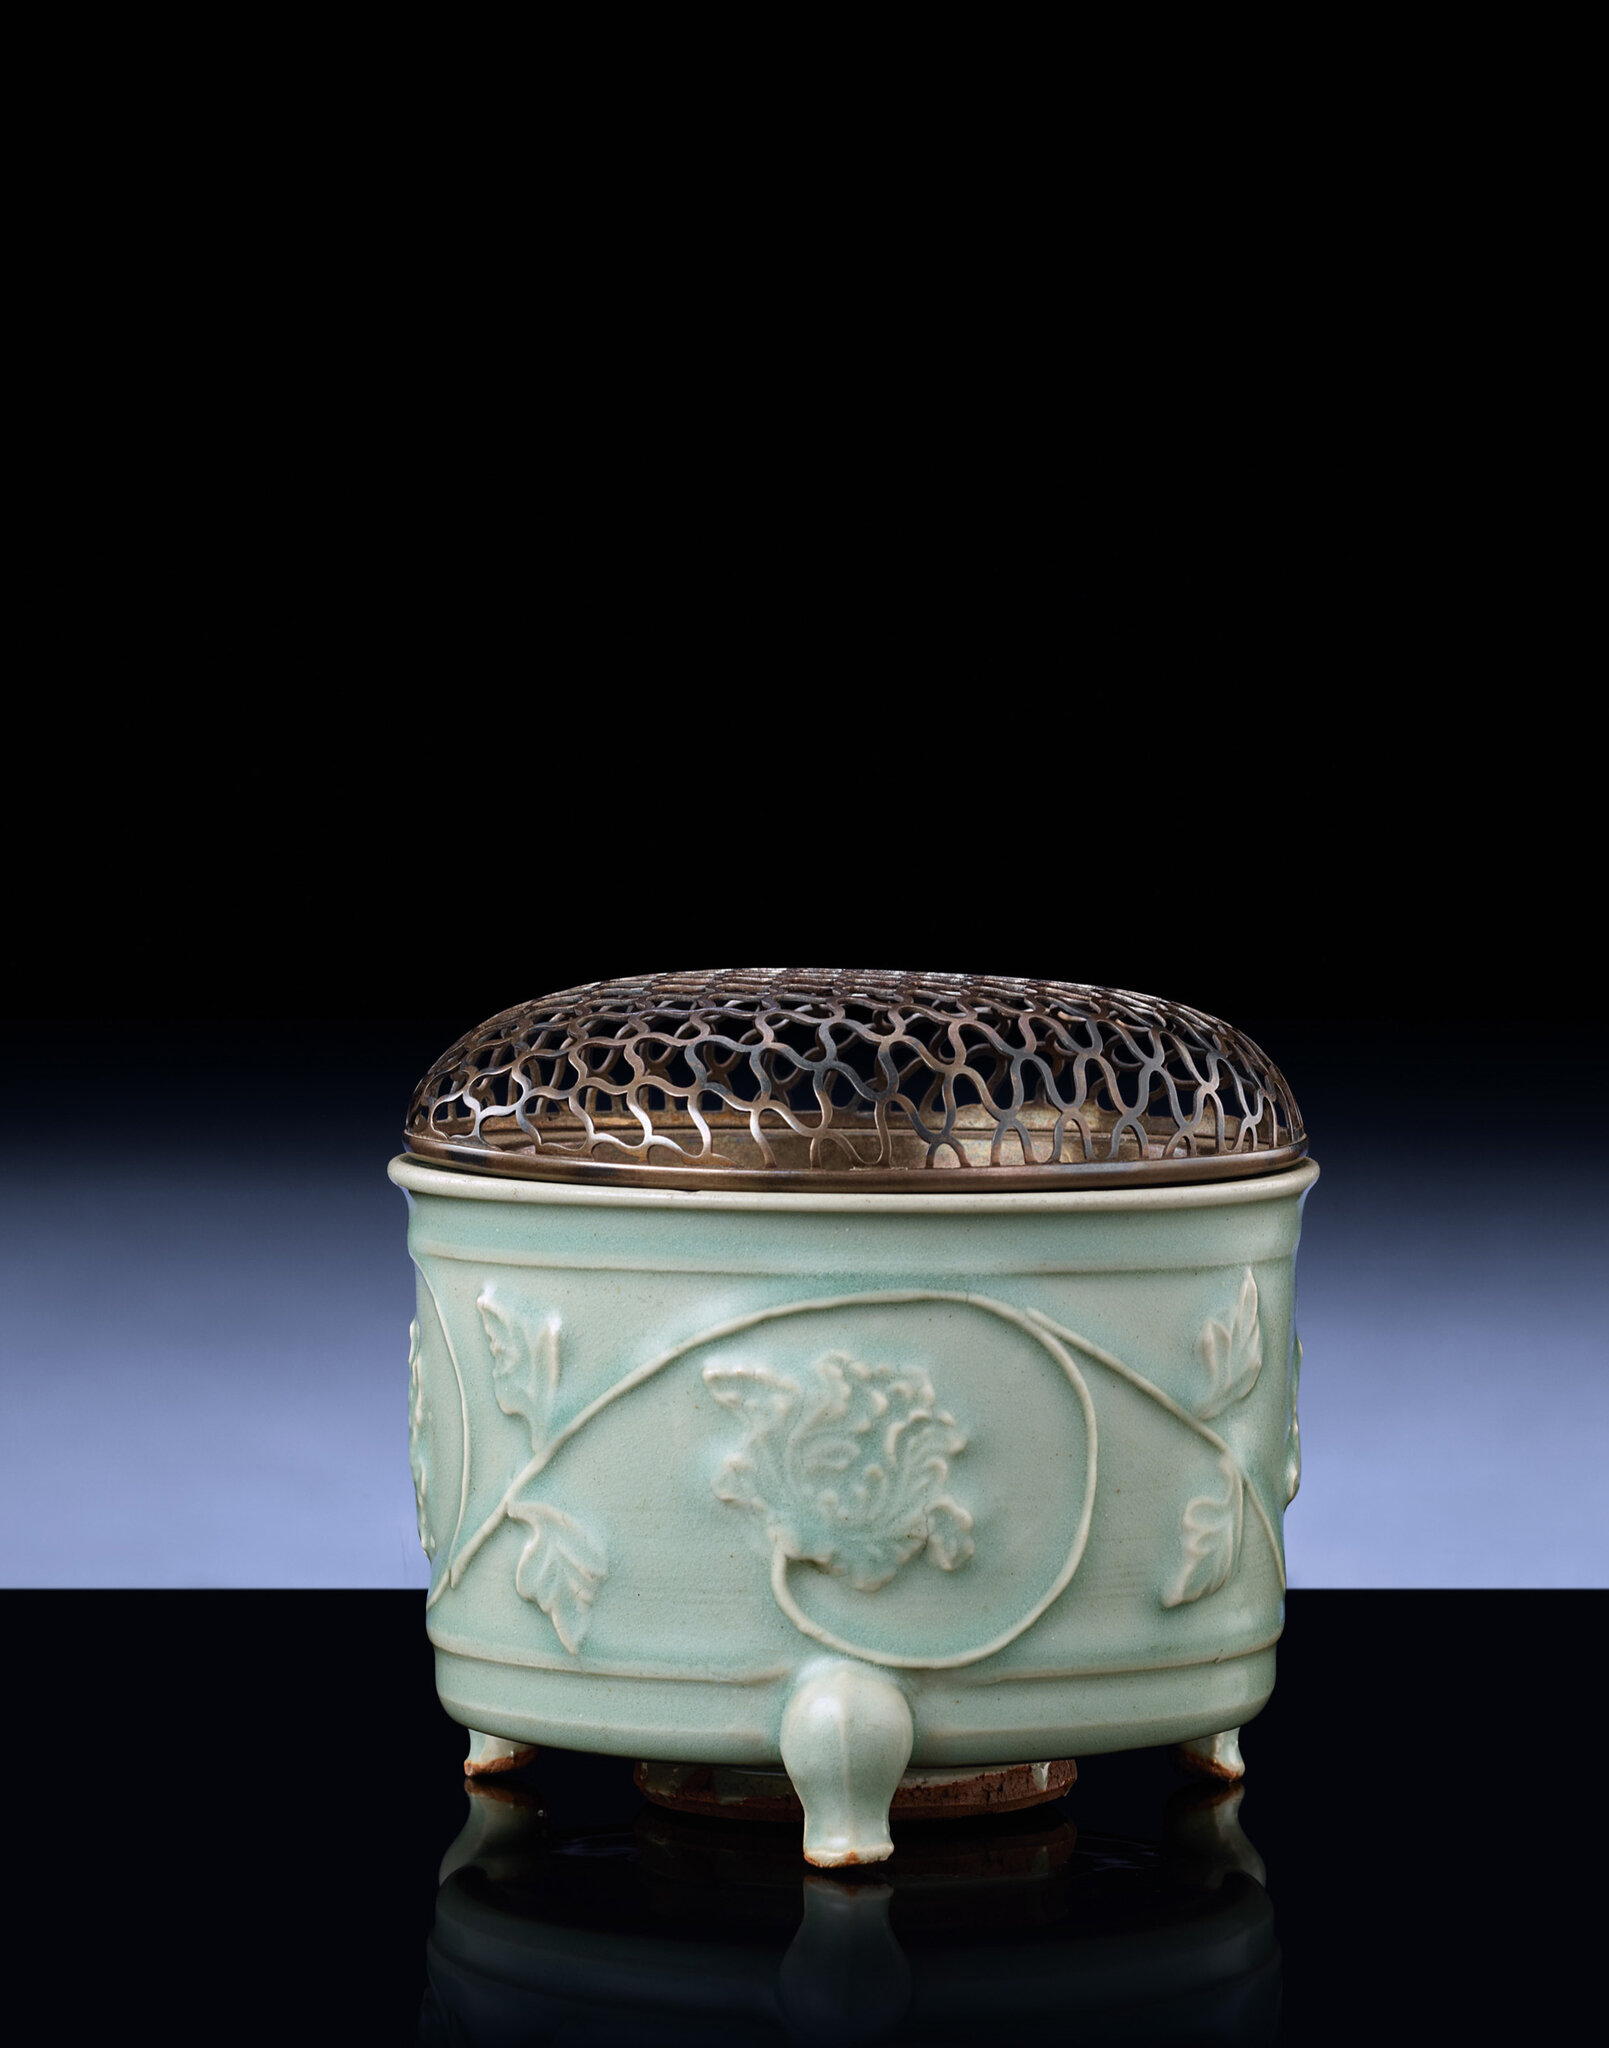 A Longquan celadon relief-decorated tripod censer, Southern Song-Yuan Dynasty, 13th-14th century ------WebKitFormBoundaryT1MuTtHimm3WahRV Content-Disposition: form-data; name=